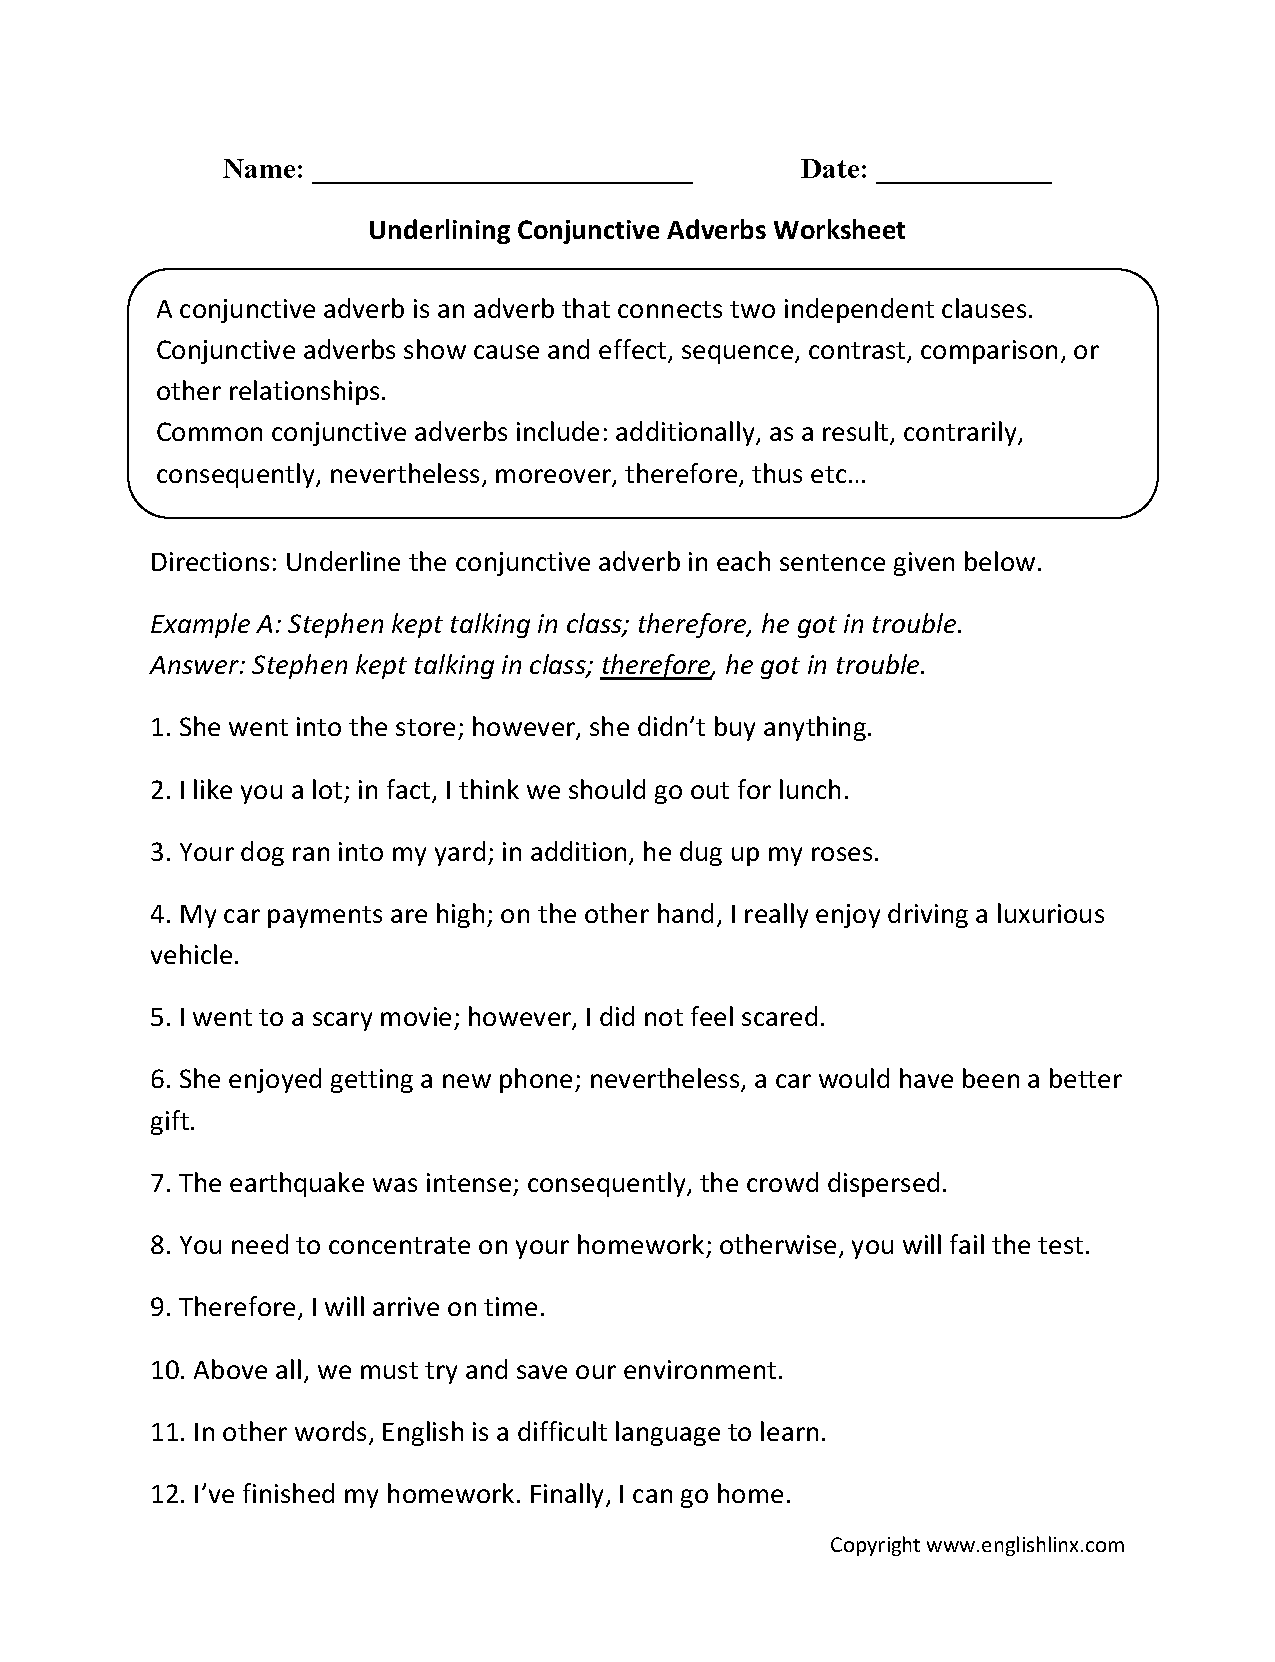 Weirdmailus  Outstanding Englishlinxcom  Conjunctions Worksheets With Great Worksheet With Agreeable Worksheet Puzzles Also D Shapes Worksheets Grade  In Addition Excel Vba Add New Worksheet And Conjunctions For Kids Worksheets As Well As Maths Worksheet For Preschool Additionally Worksheet For Letter L From Englishlinxcom With Weirdmailus  Great Englishlinxcom  Conjunctions Worksheets With Agreeable Worksheet And Outstanding Worksheet Puzzles Also D Shapes Worksheets Grade  In Addition Excel Vba Add New Worksheet From Englishlinxcom